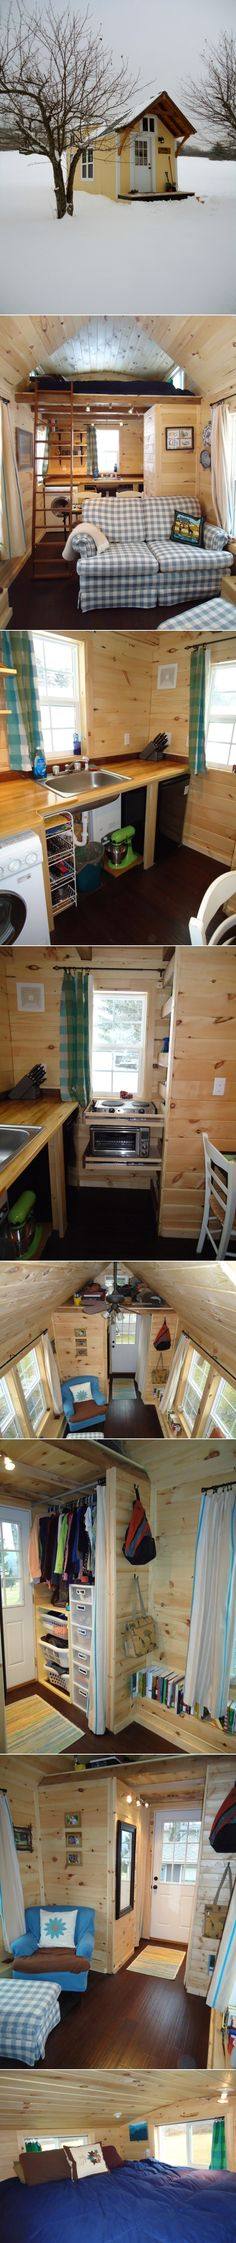 http://tinyhouseswoon.com/keep-on-the-sunny-side-tiny-house/